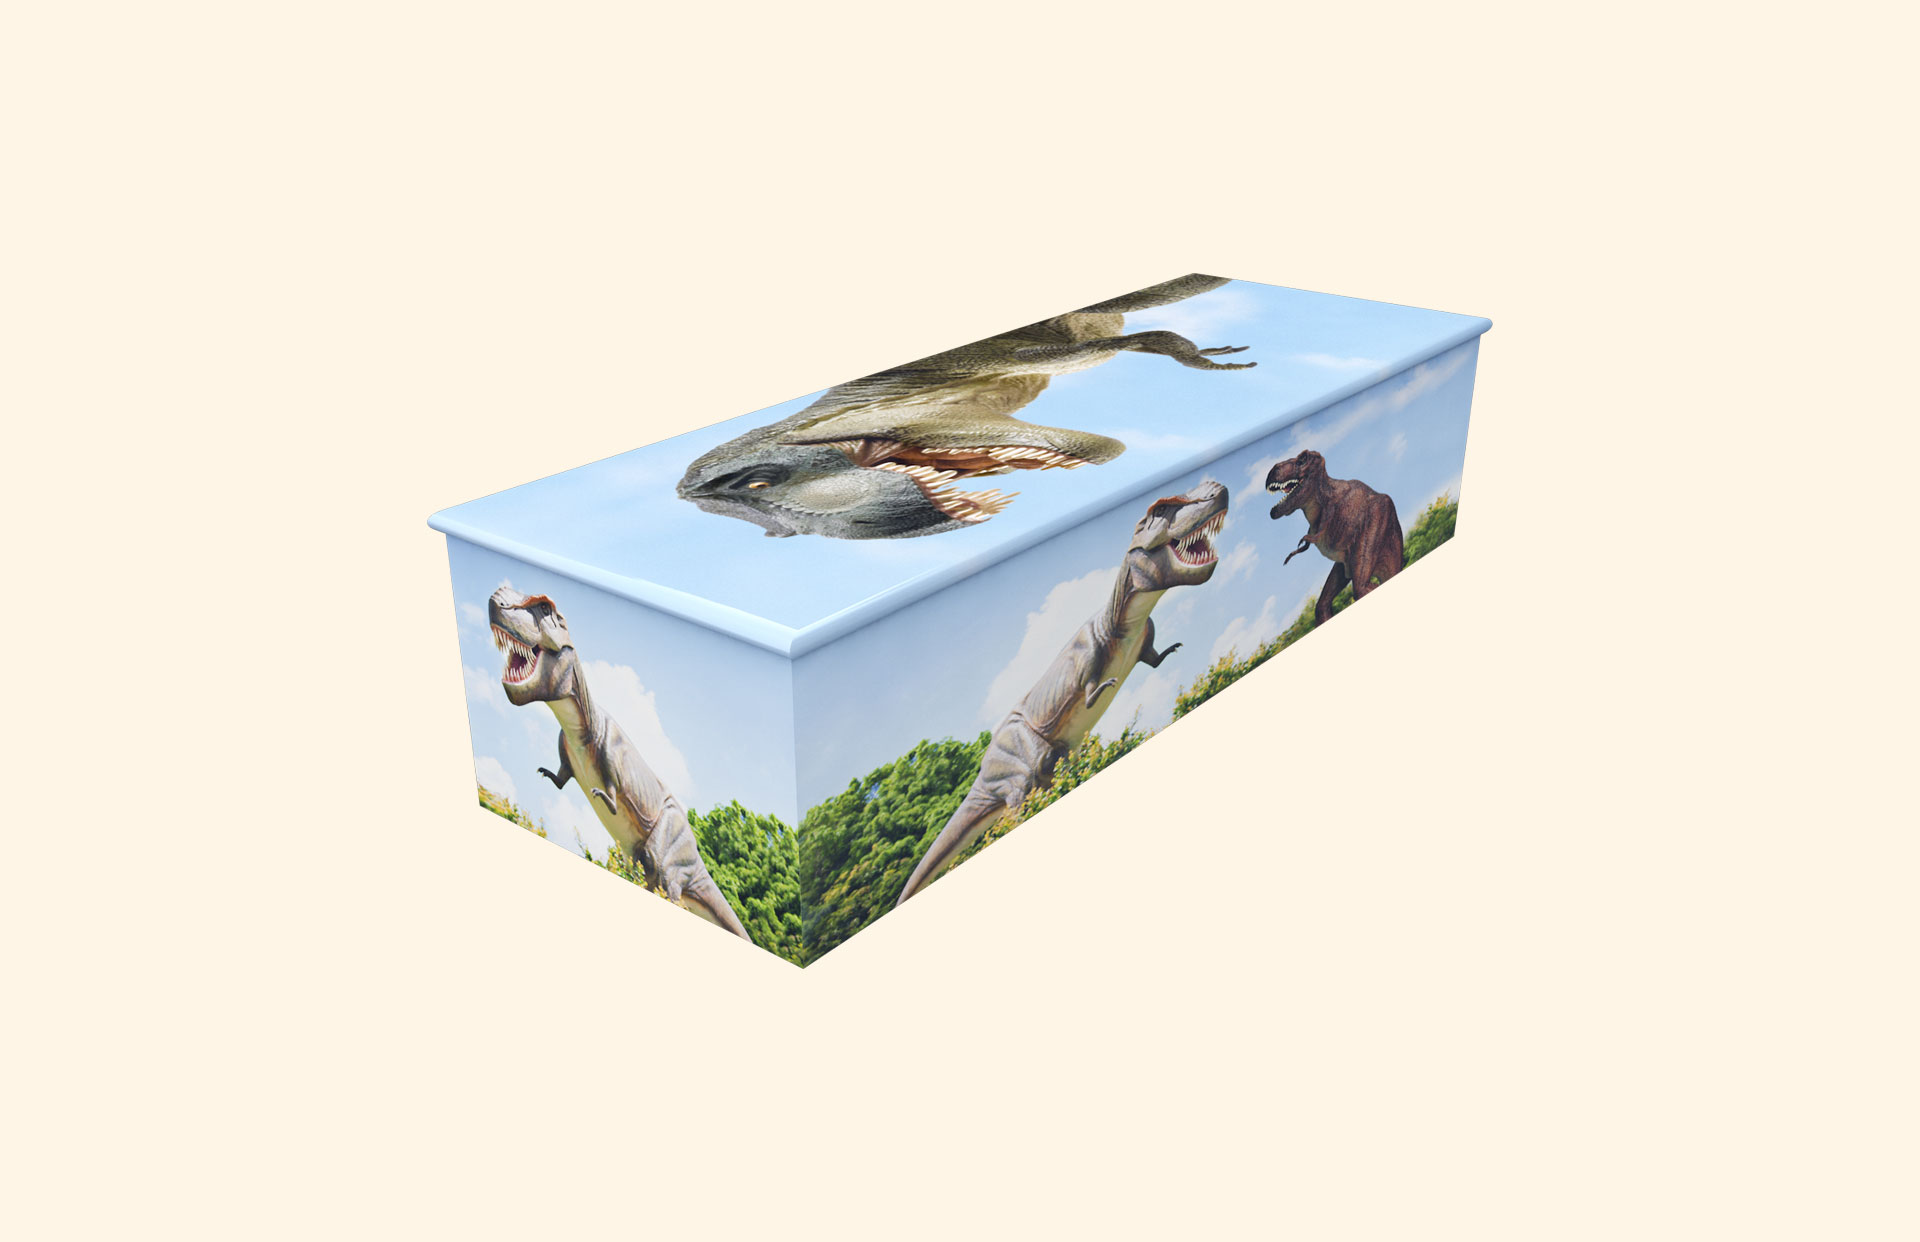 T Rex child casket